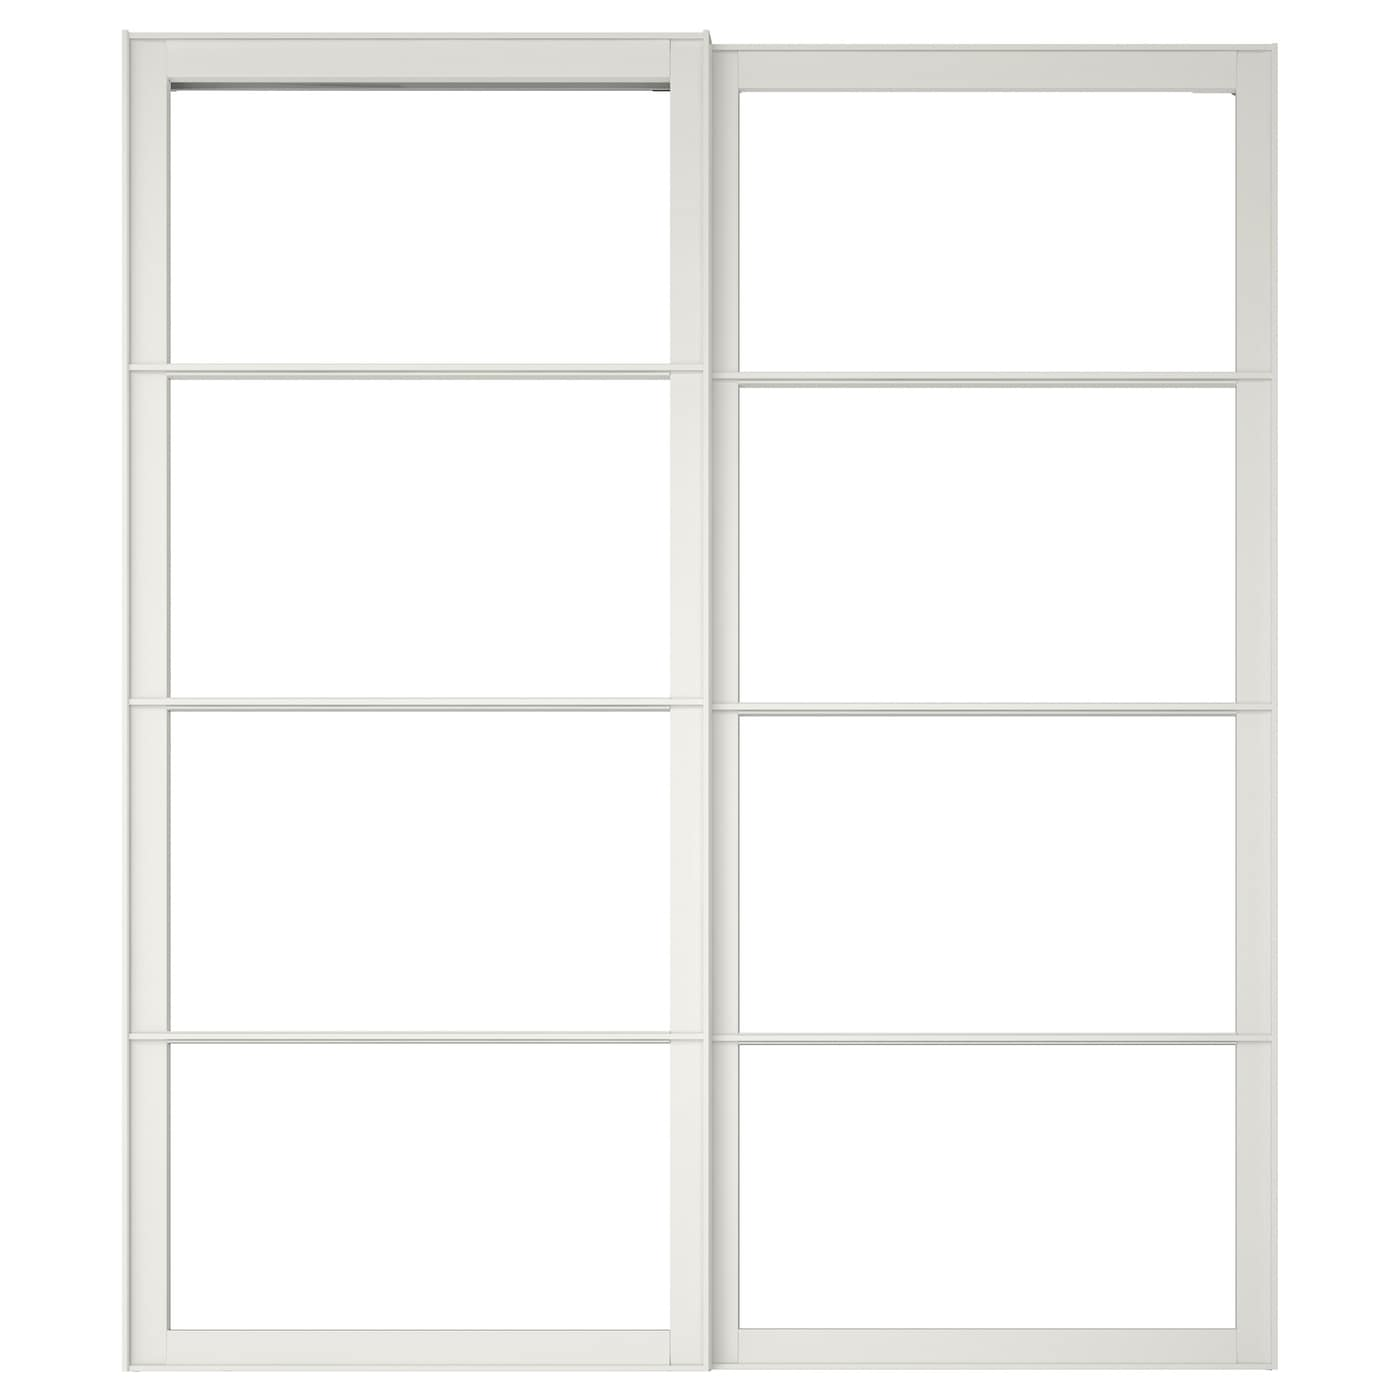 Charmant IKEA PAX Cadre Porte Coulissante 2pces Nice Look